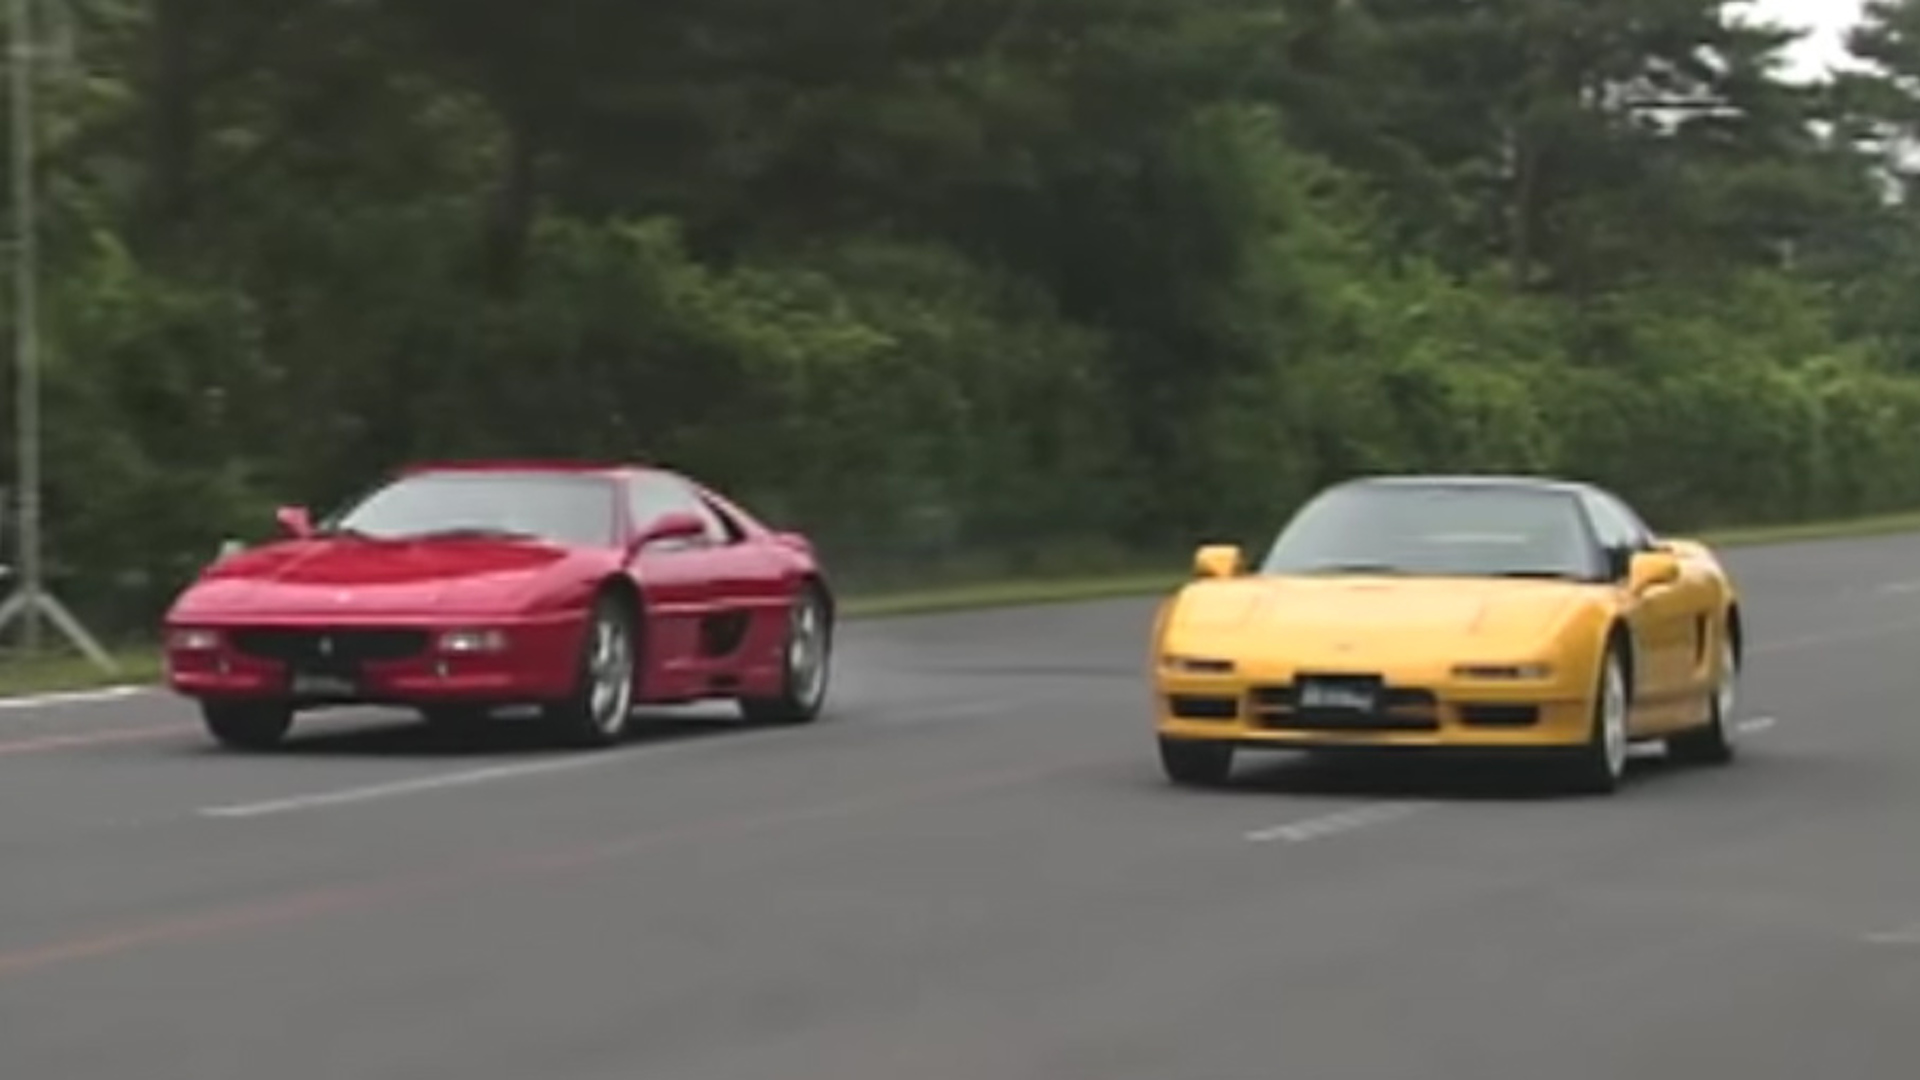 Acura Nsx R And Ferrari F355 Drag Race Transports Us Back To 1995